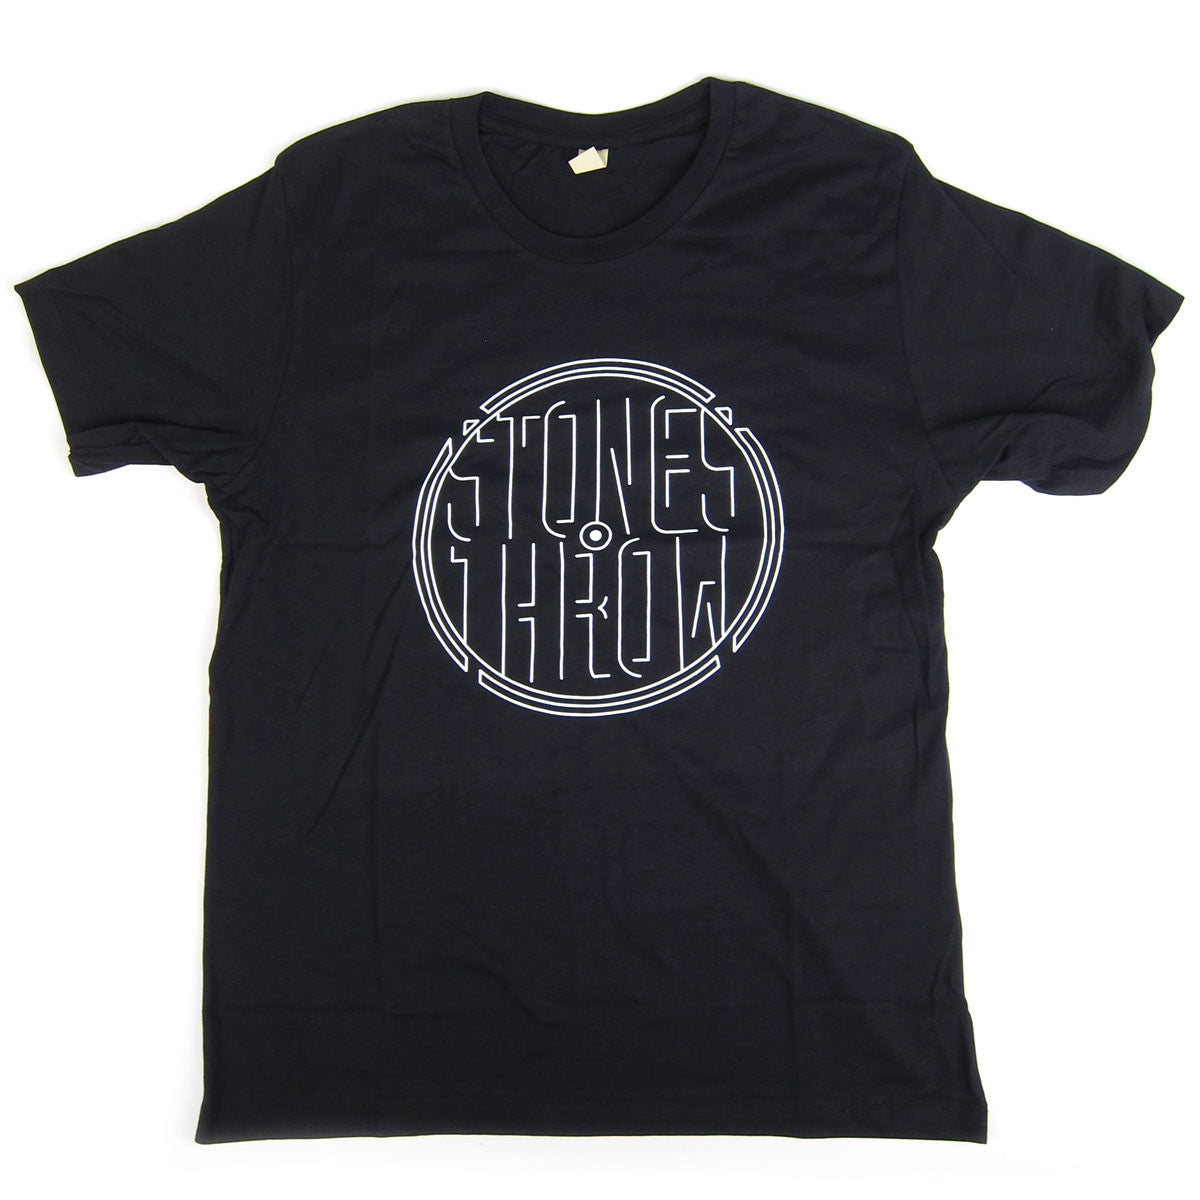 Stones Throw: Stencil Shirt - Black